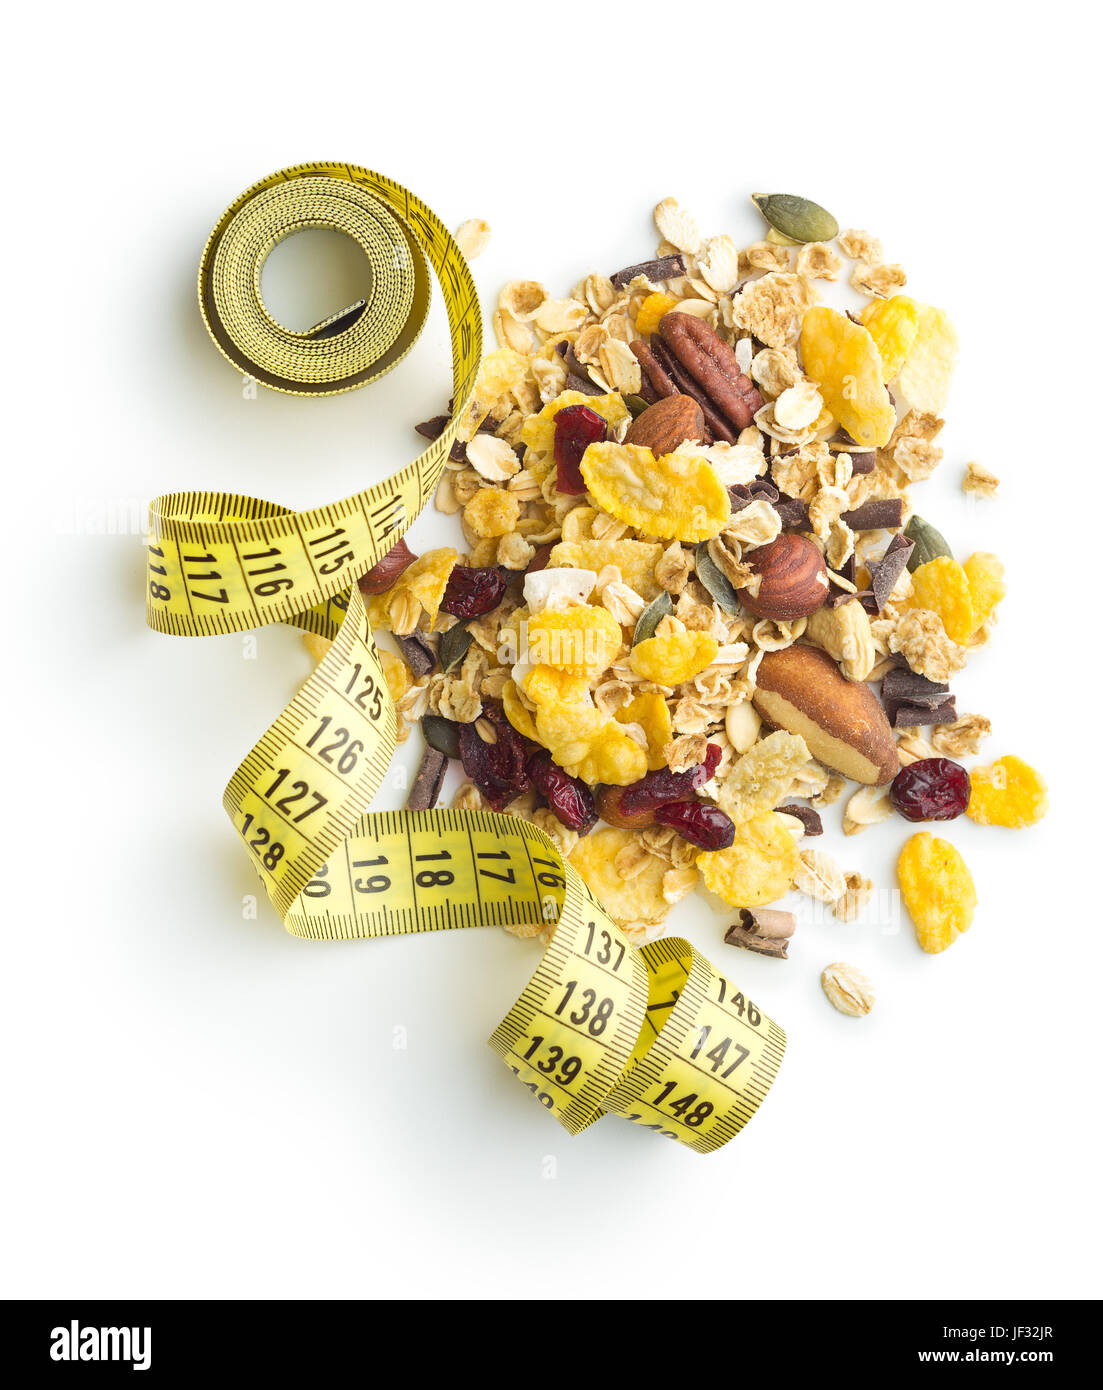 Tasty homemade muesli with nuts and measuring tape isolated on white background. Diet concept. - Stock Image